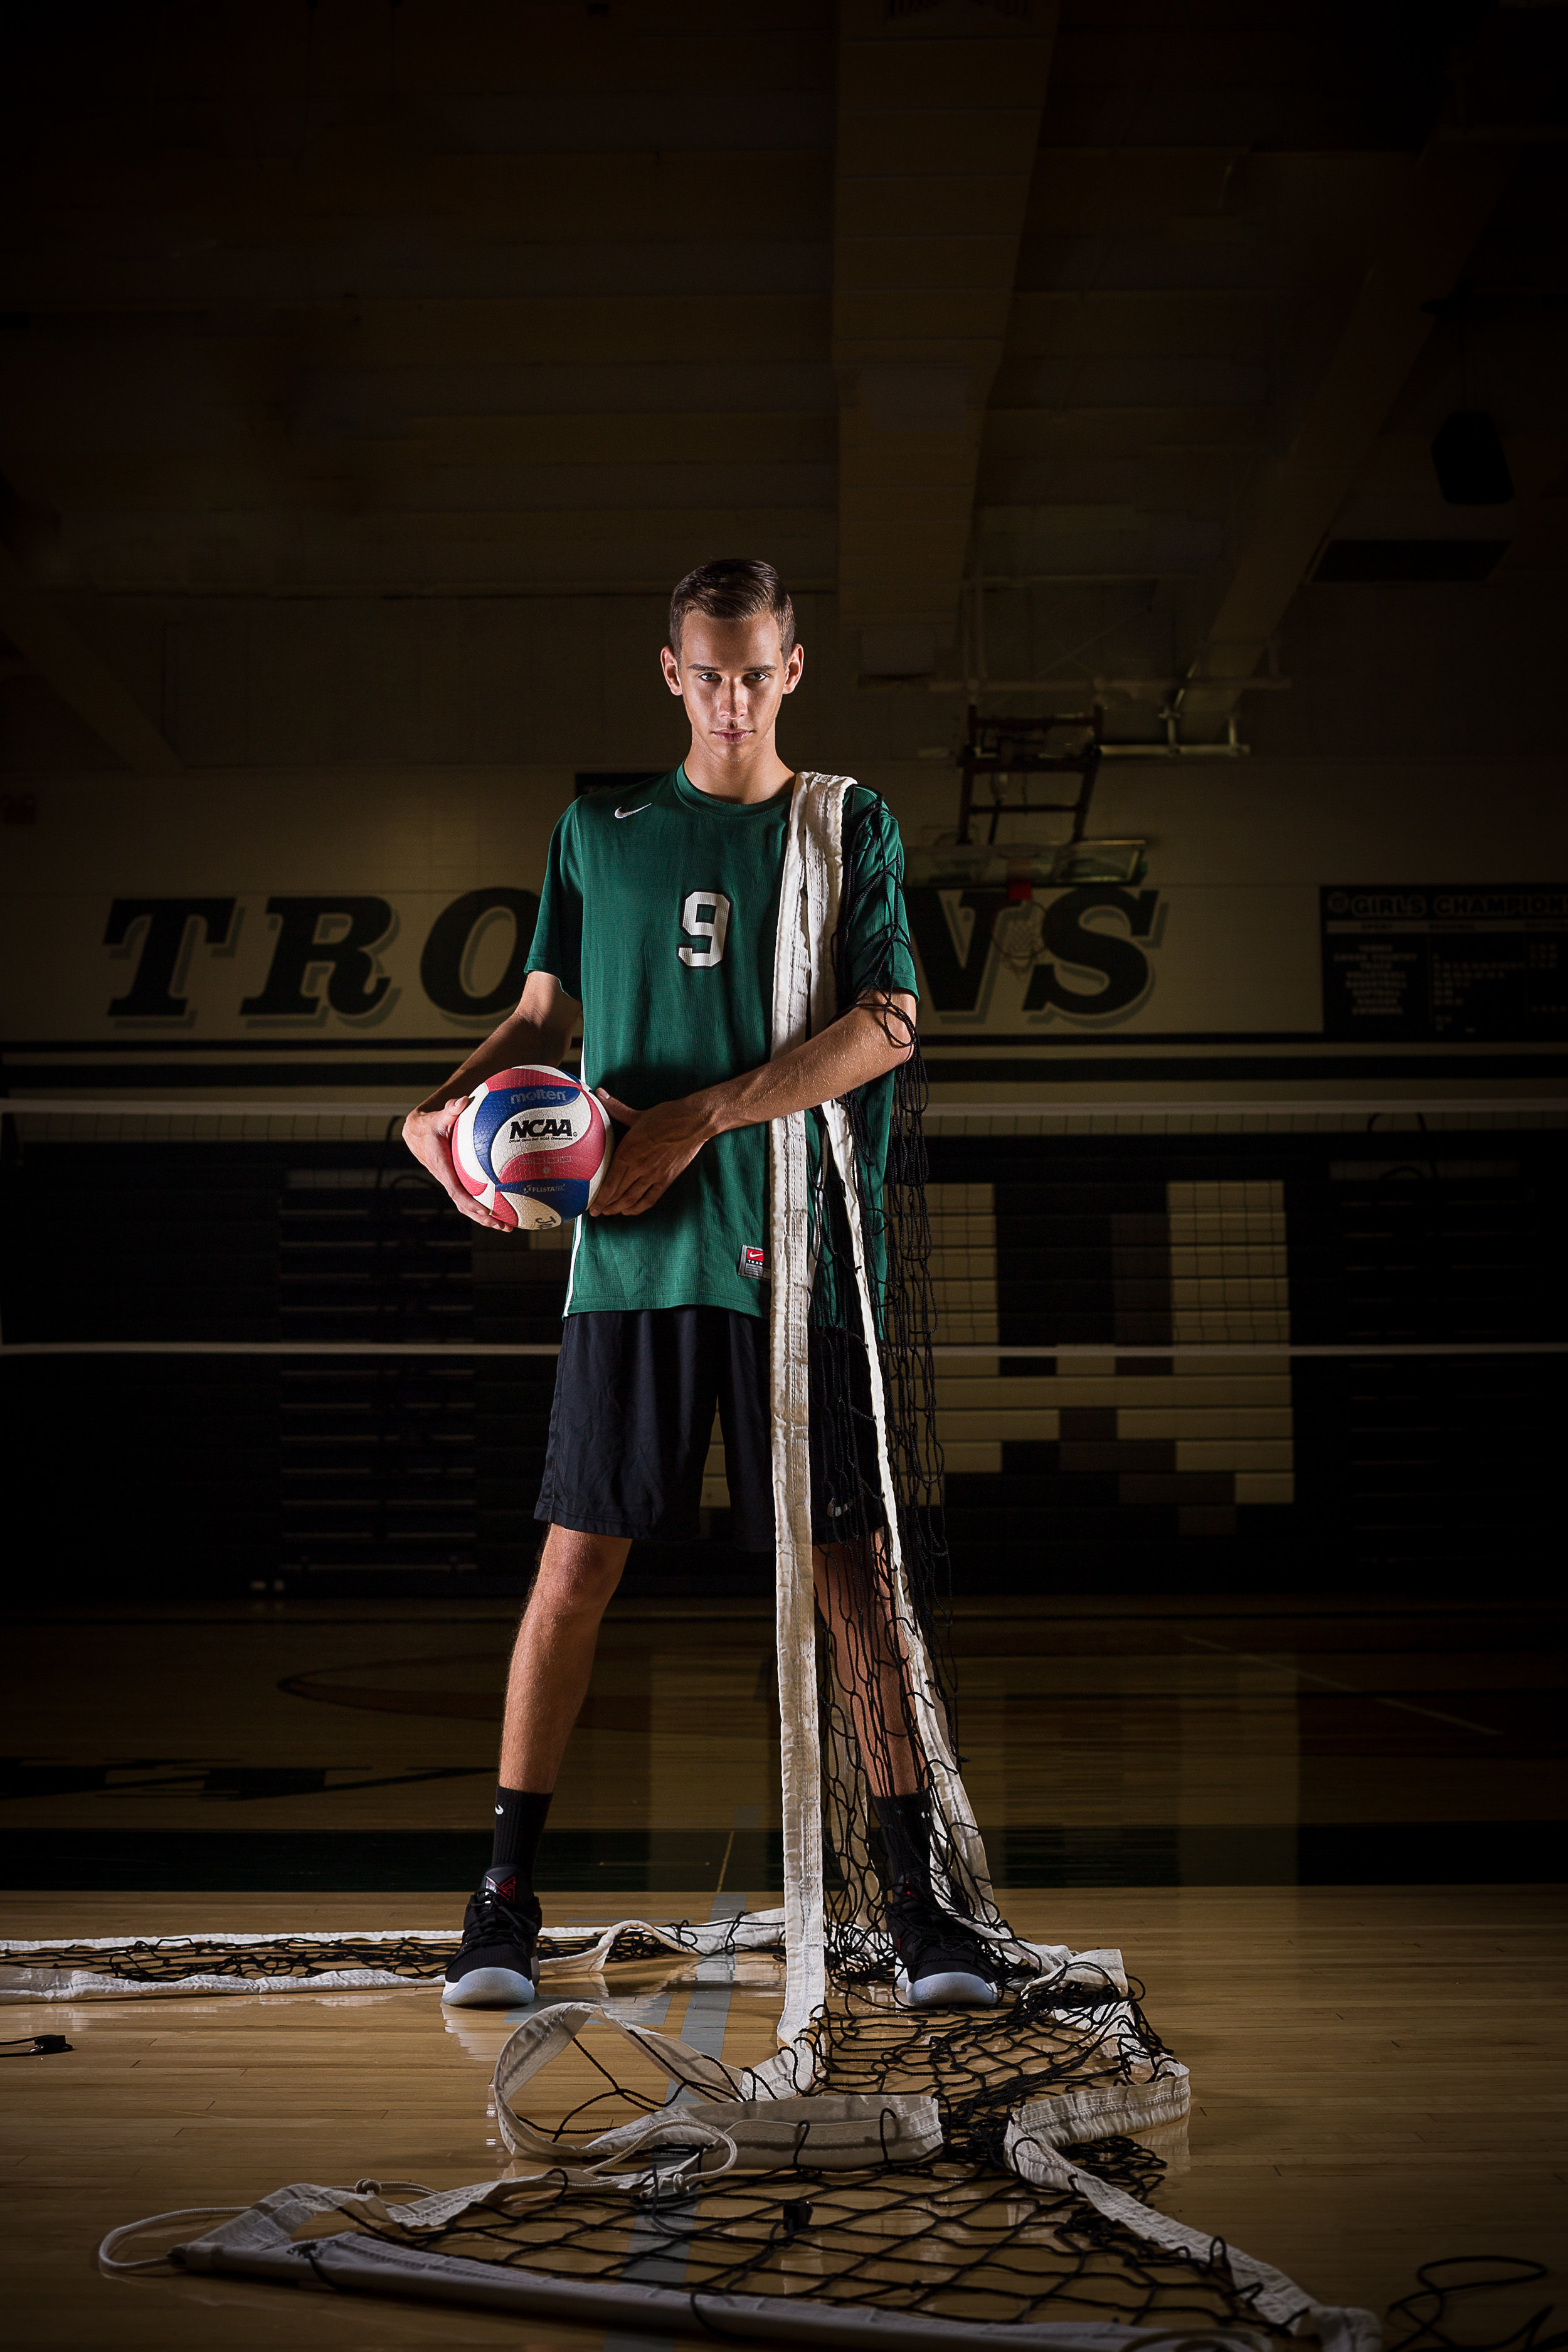 This image of Joe on the volleyball court is an award winning photo! It earned a SYNC Award of Excellence in March 2019.